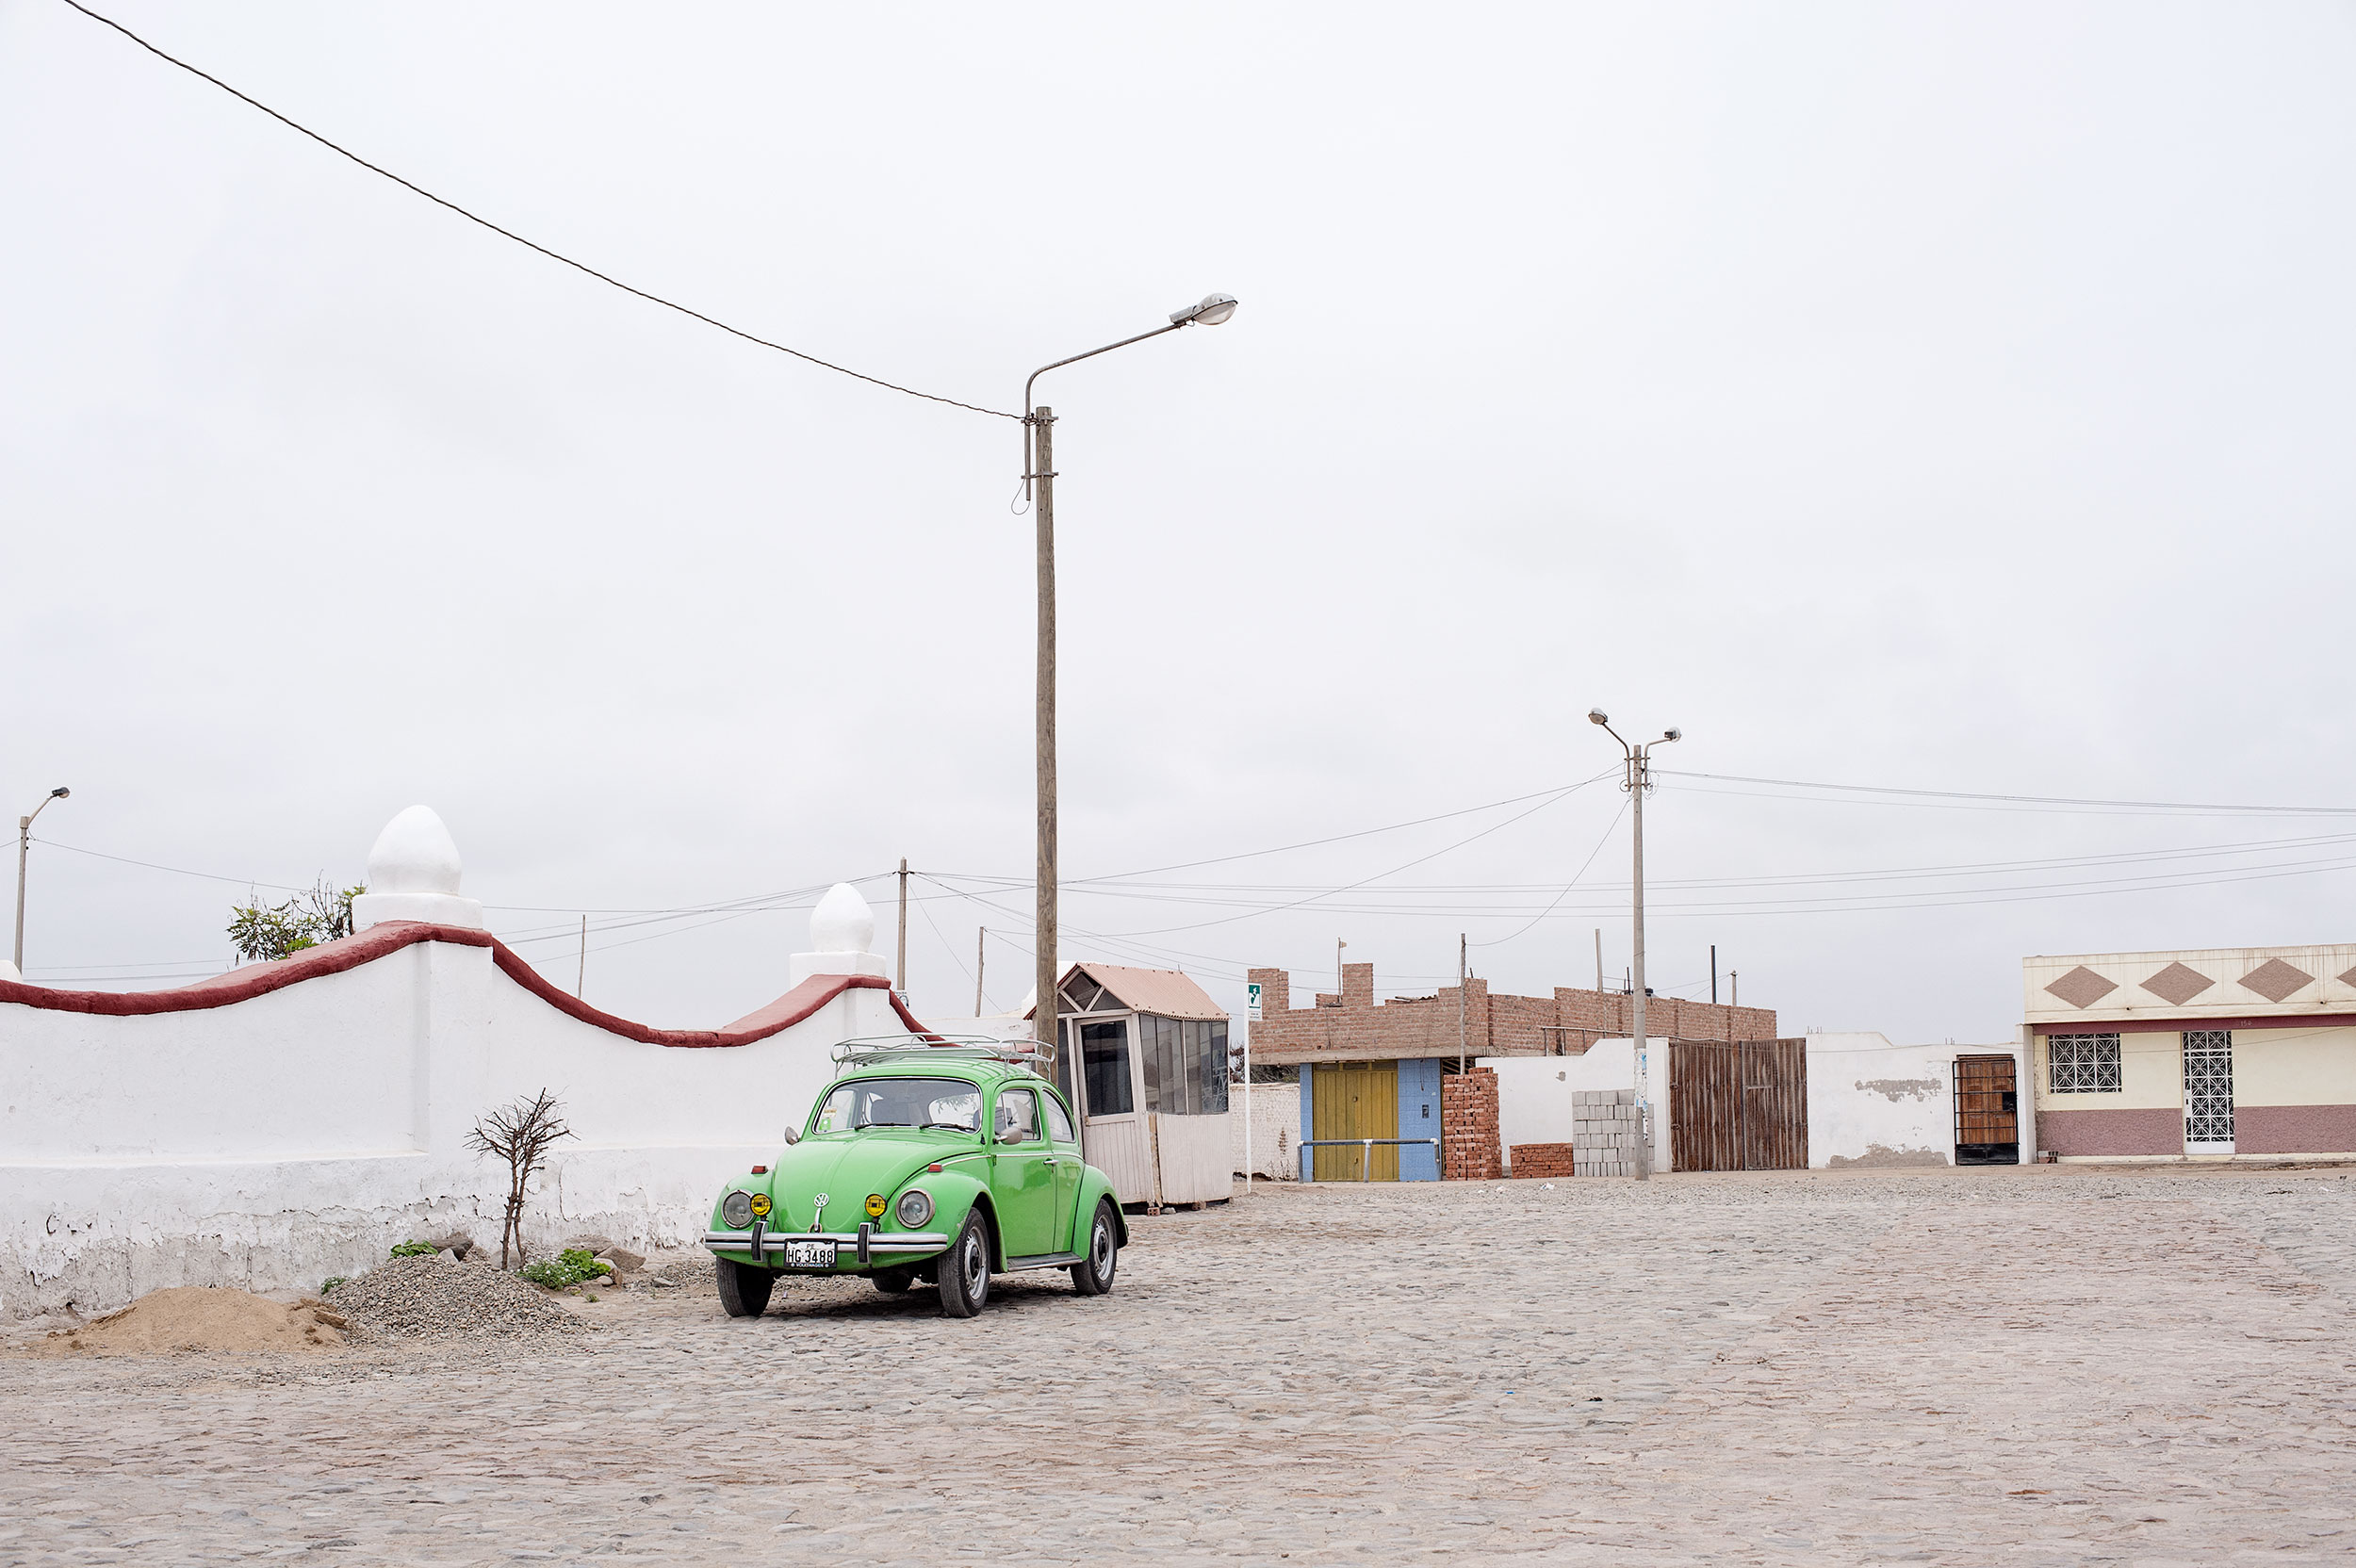 One of the most popular cars in Peru Volkswagen Beetle parked outside cemetery in Huanchaco.